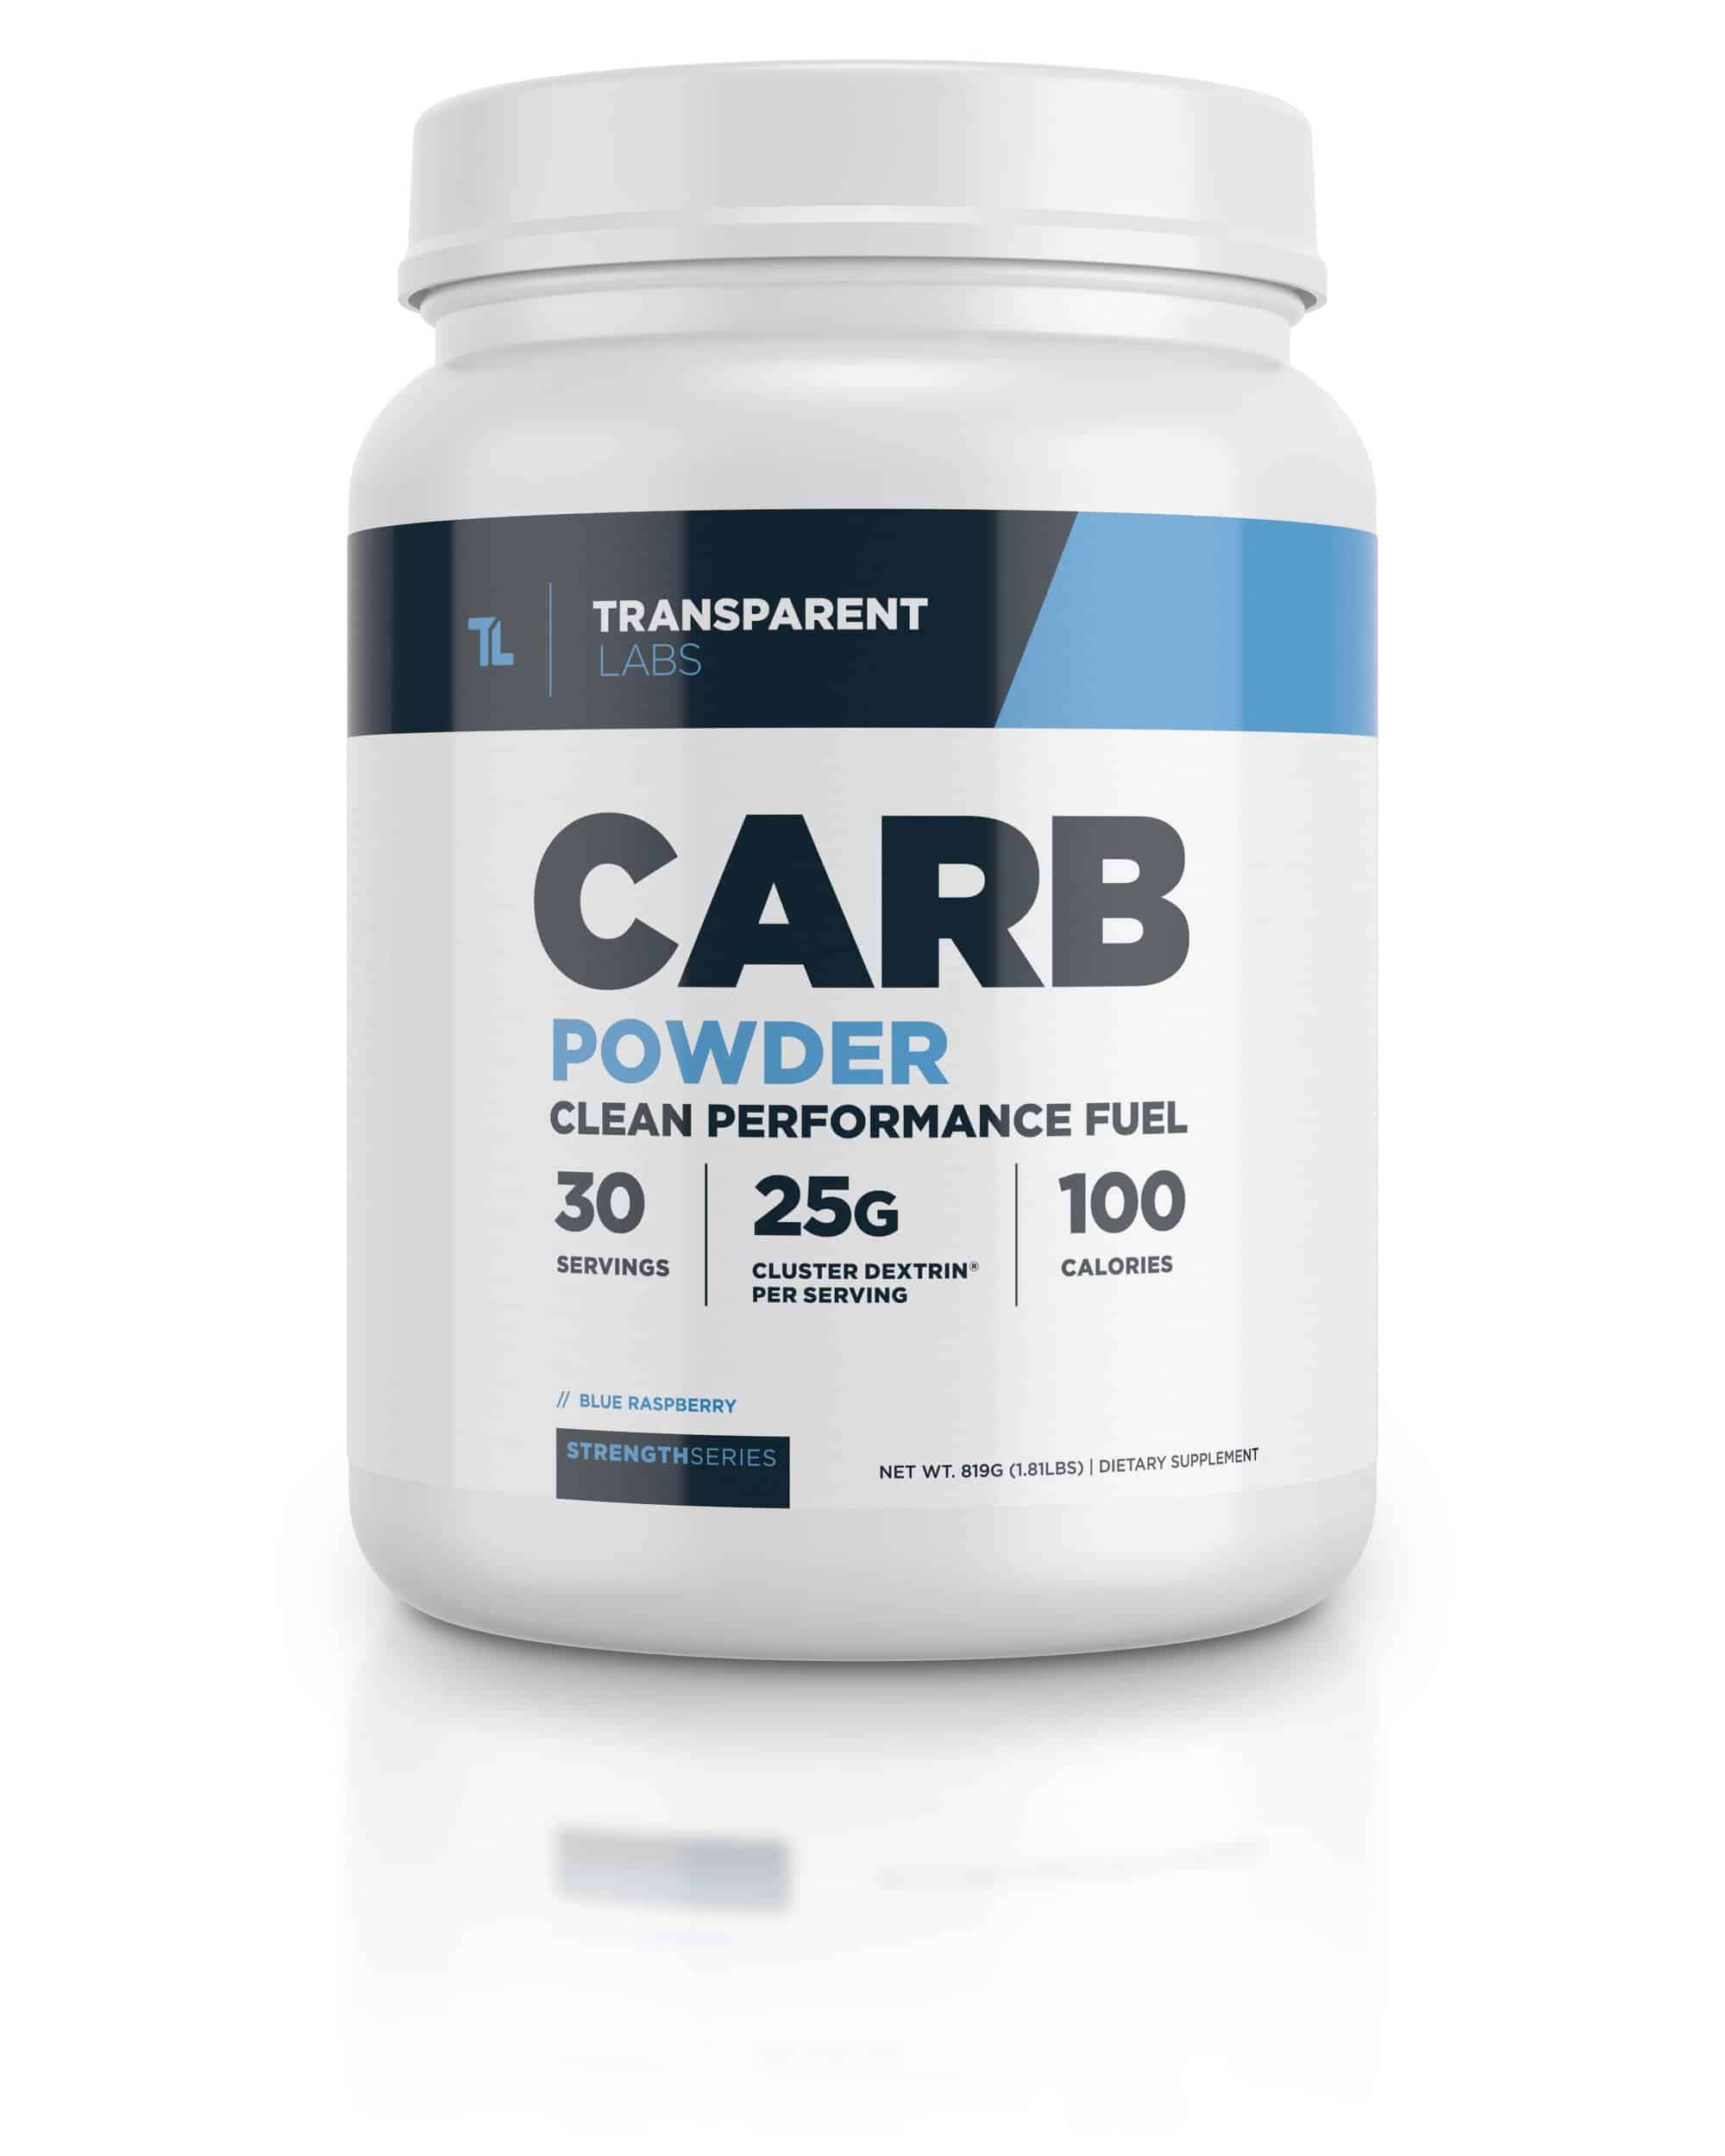 Transparent Labs Carb Powder with Cluster Dextrin (30 Servings)